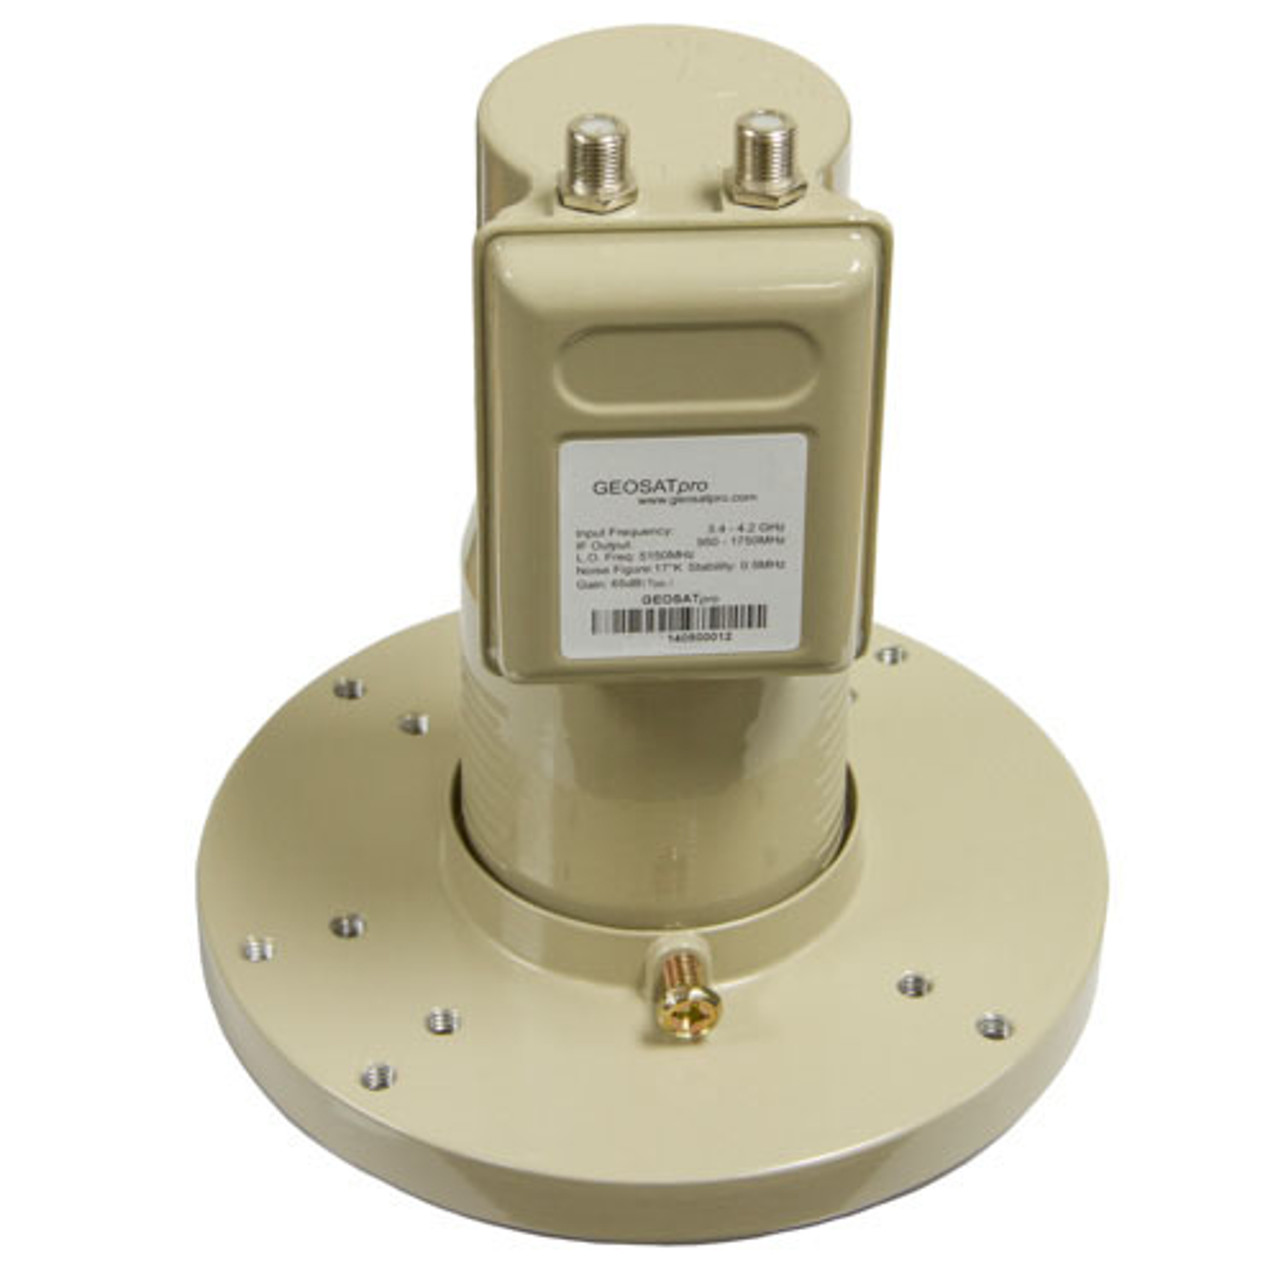 Dual Output LTE 4G 5G WiFi Radar Interference Filtering Phase Lock Loop C2-PLL C-Band LNBF